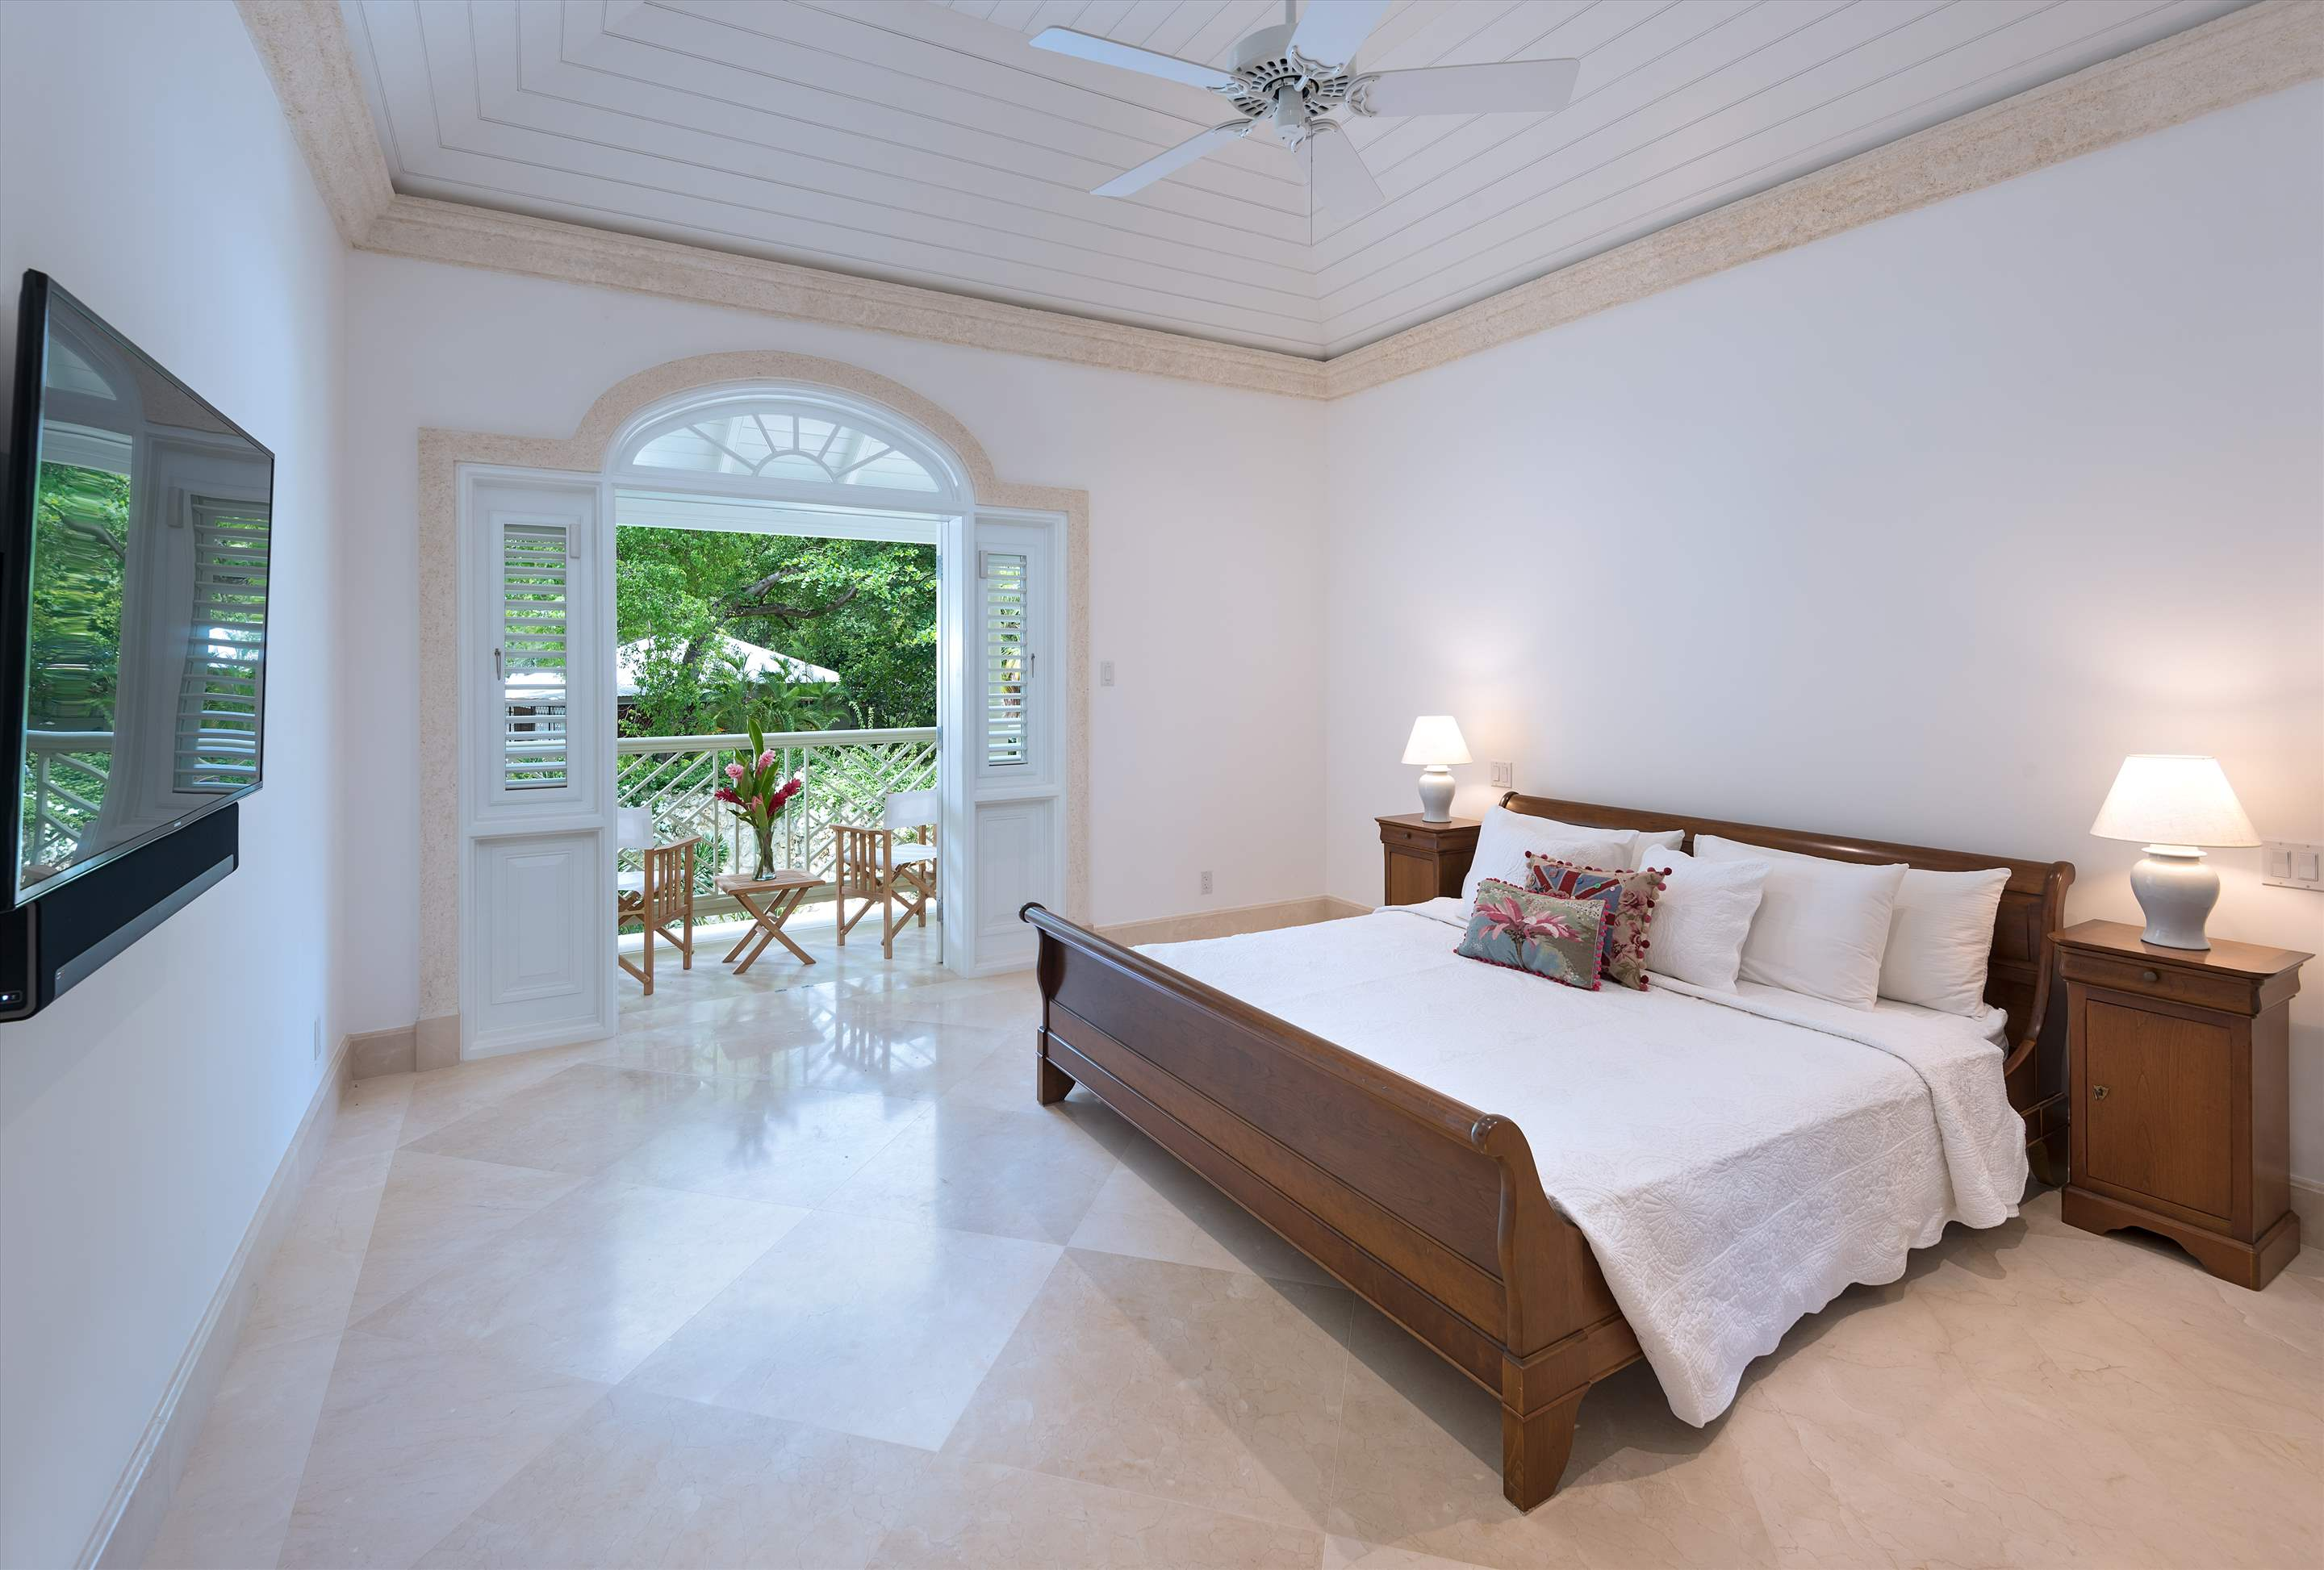 Hemingway House, St Peter, 4 bedroom villa in St. James & West Coast, Barbados Photo #8